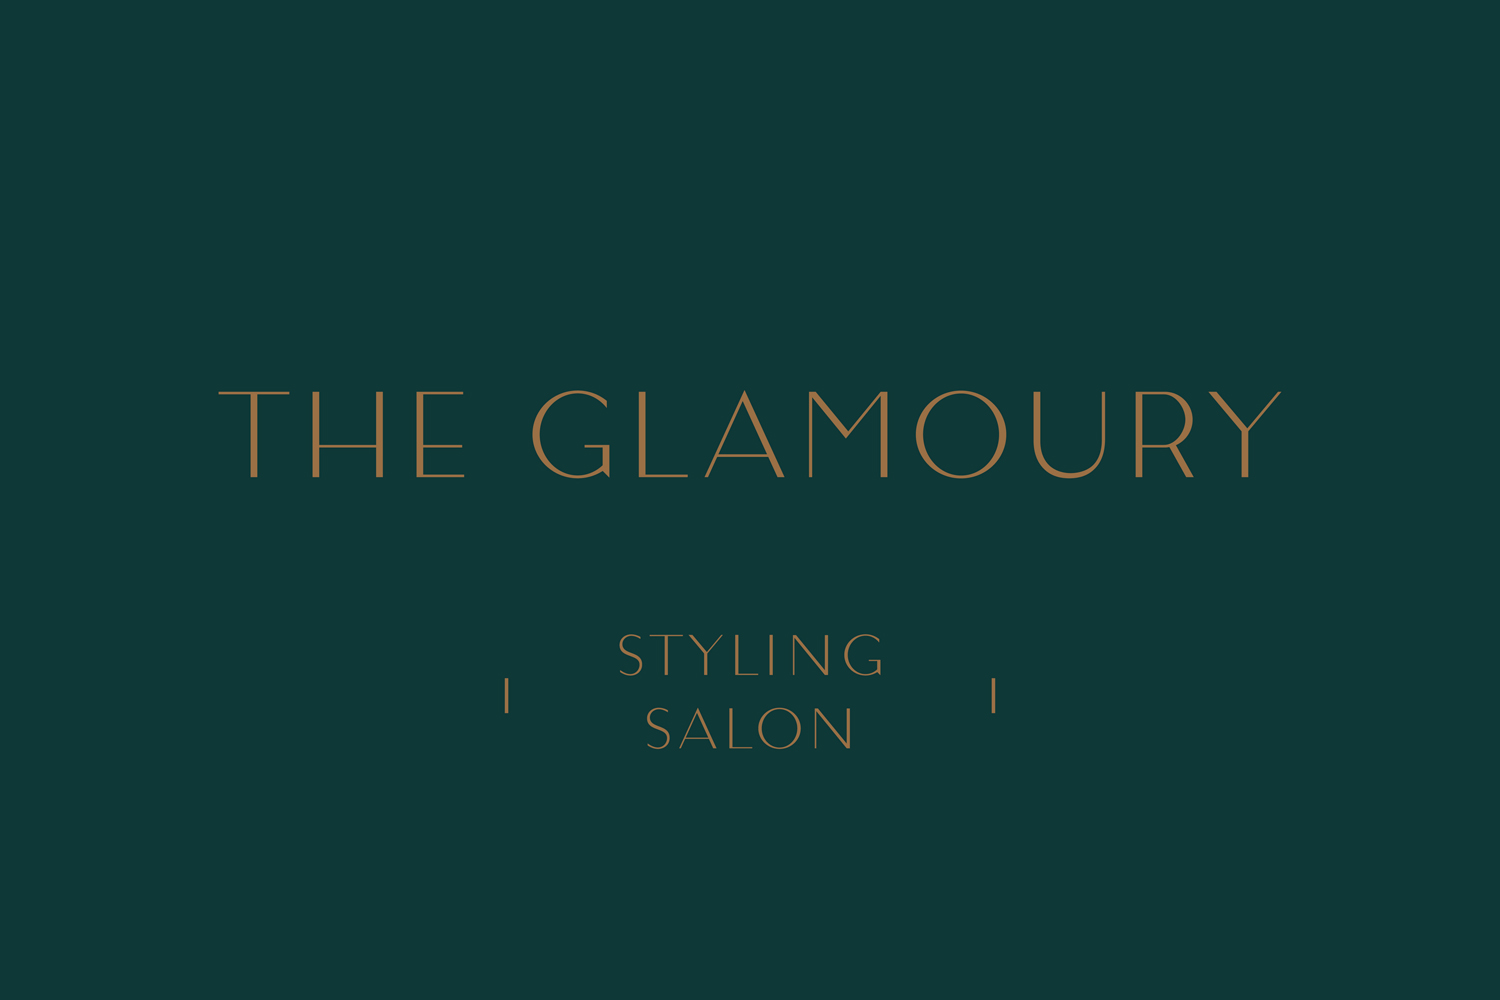 Logotype by Canadian studio Glasfurd & Walker for Vancouver-based luxury make-up and styling salon The Glamoury.